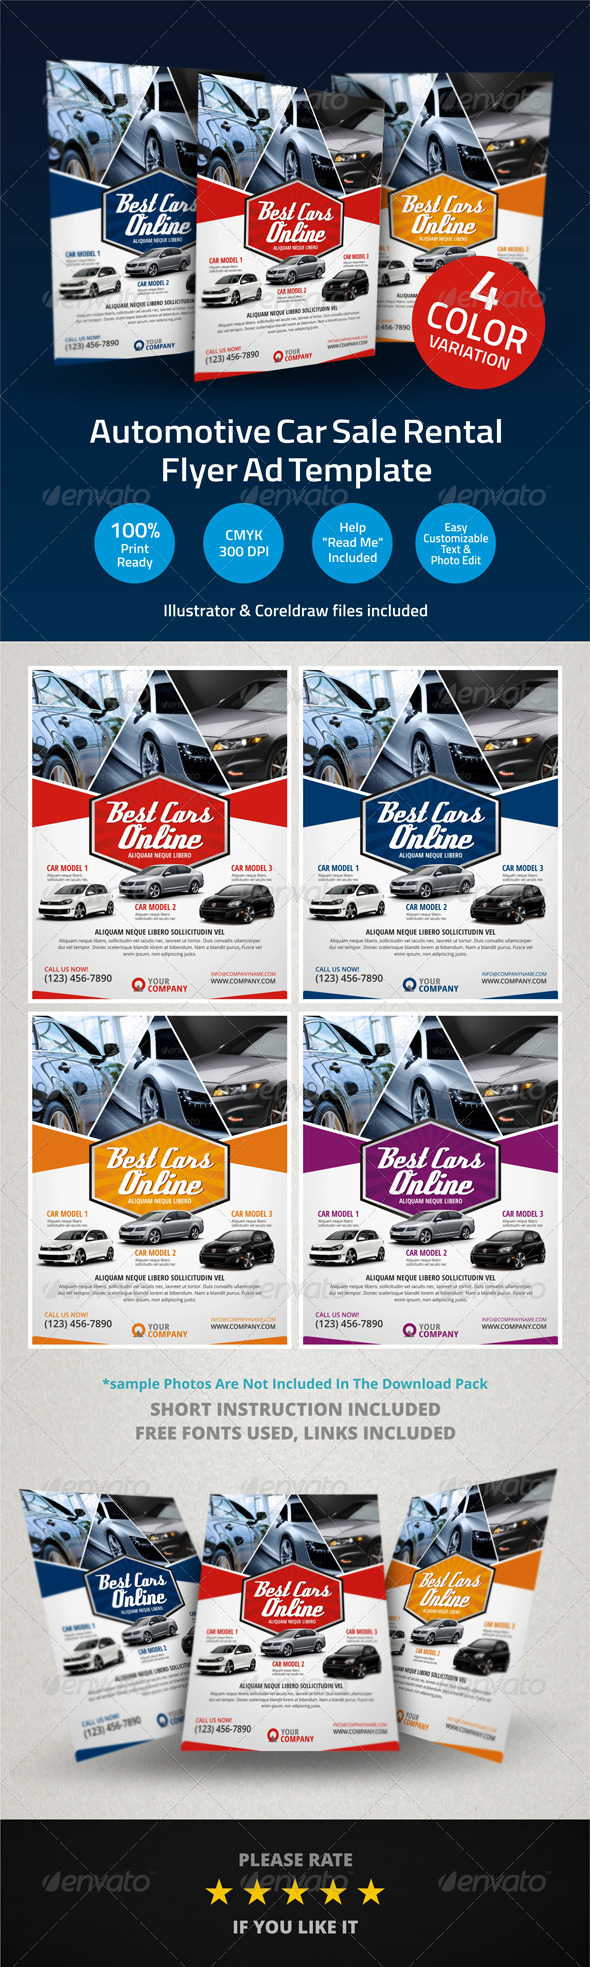 Car Rental Flyer Template - For rent advertisement template